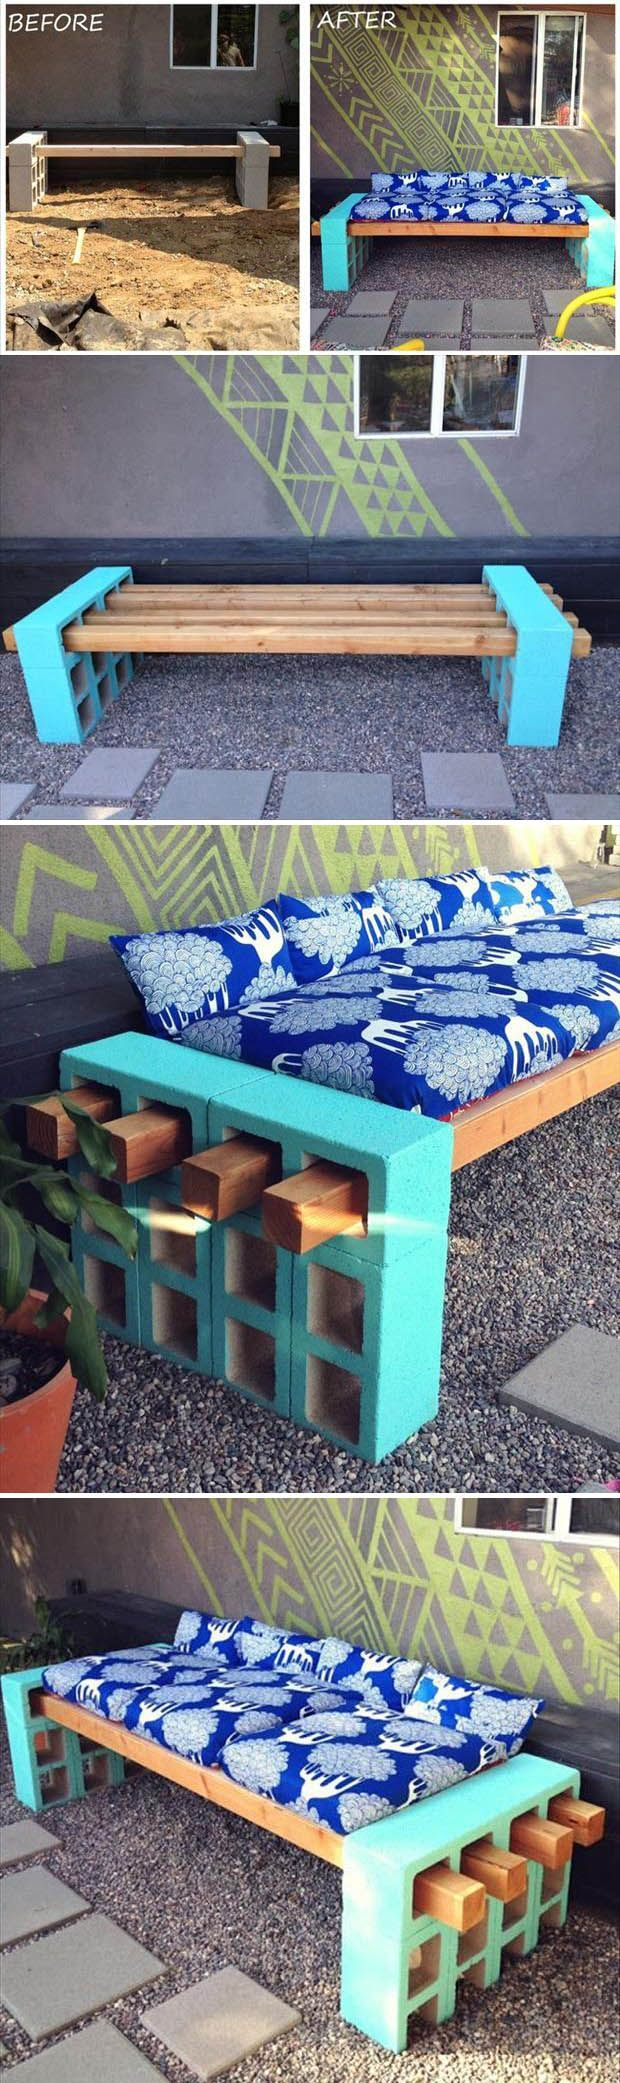 DIY Cinderblock Bench